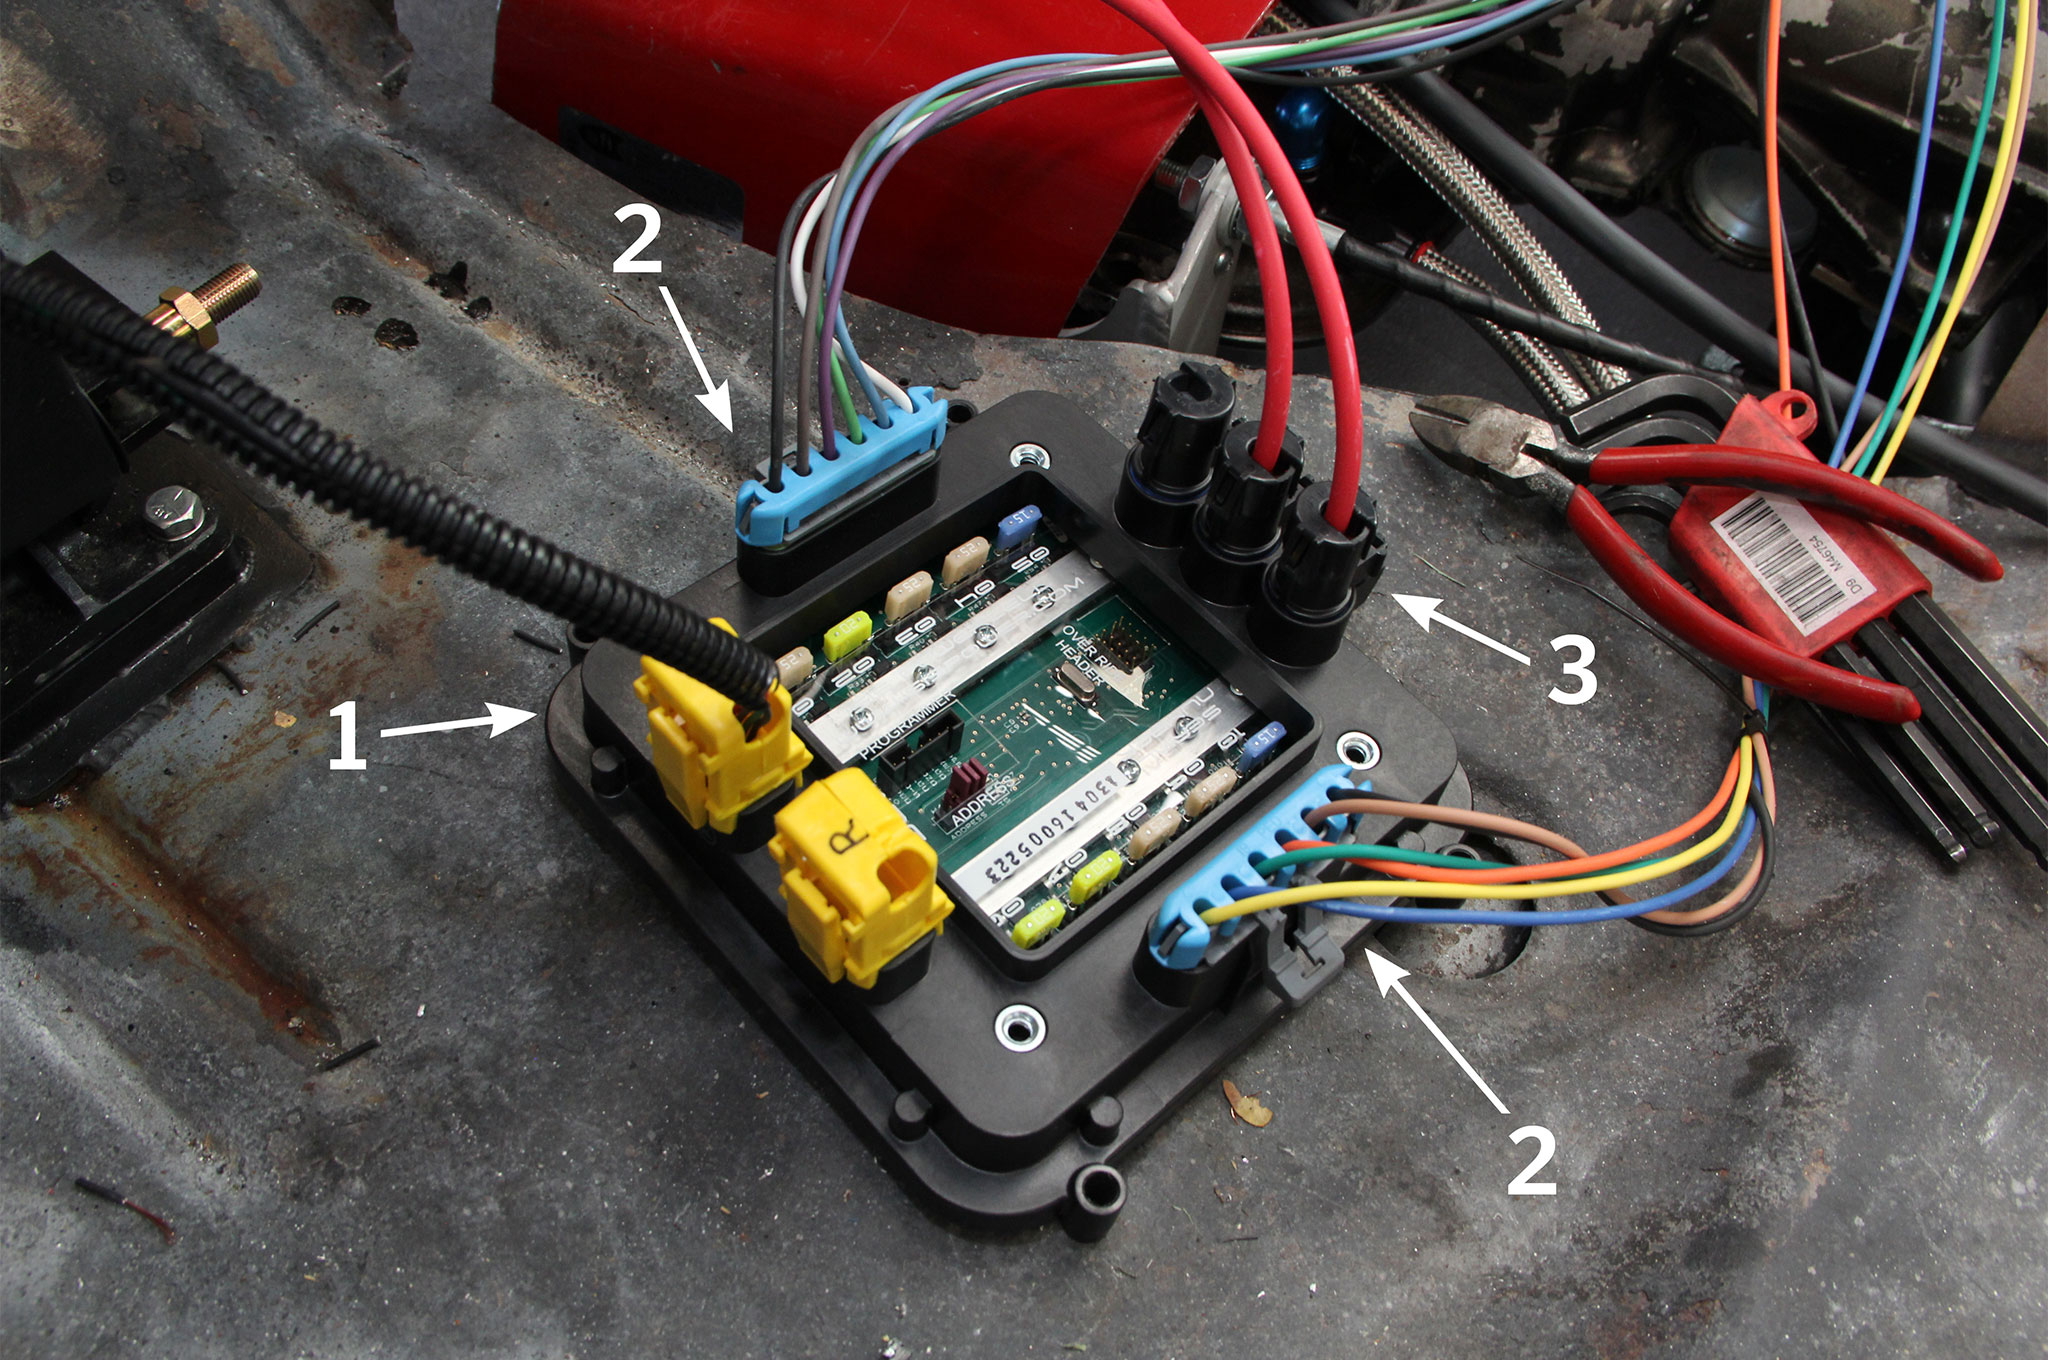 Race car wiring diagram machine detail dolgular excellent legends race car wiring diagram ideas electrical cheapraybanclubmaster Gallery